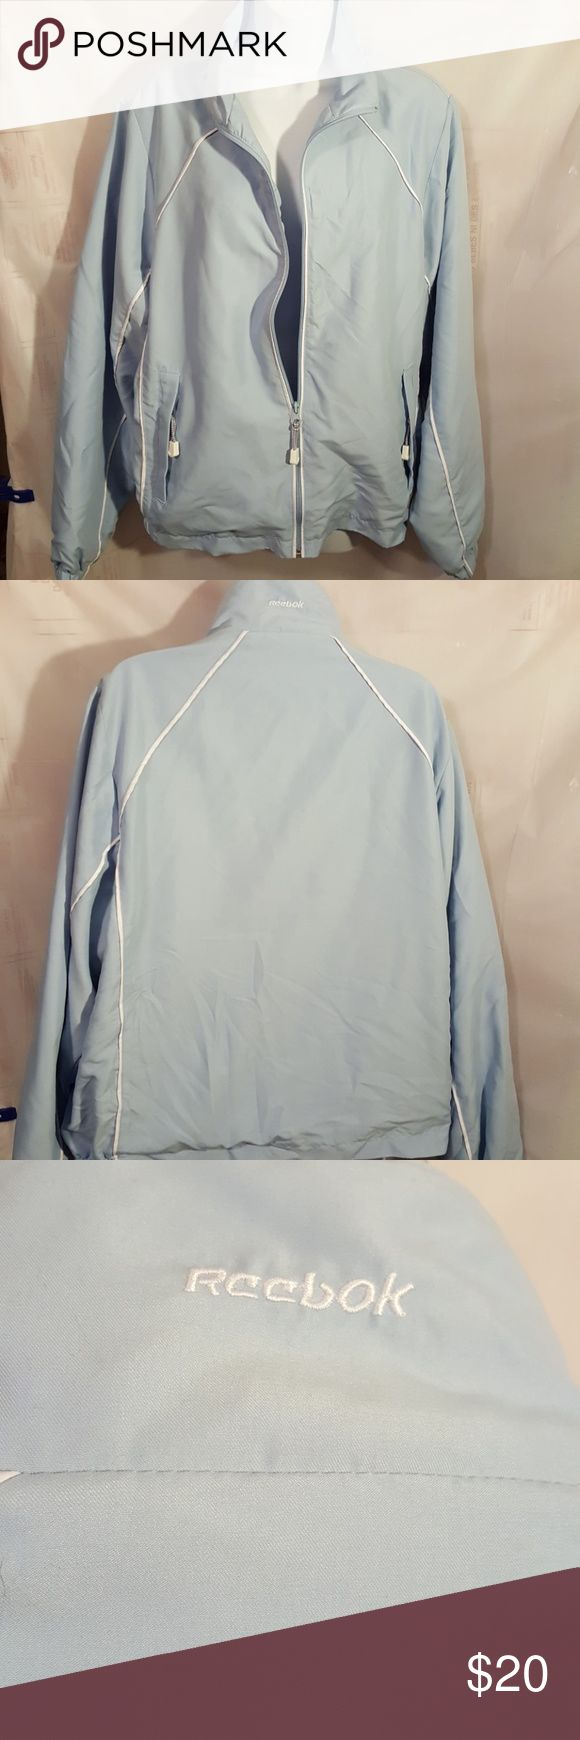 """Reebok Womens Windbreaker XL This is a womens Reebok windbreaker, lightweight.  Light blue with white pipping.  Zipper front closure. Long sleeved. Material is polyester. Size XL.  Measurements Shoulder to shoulder. 18"""" Chest. 24 1/2"""""""" Lengrh.   23 1/2"""" Reebok Jackets & Coats"""